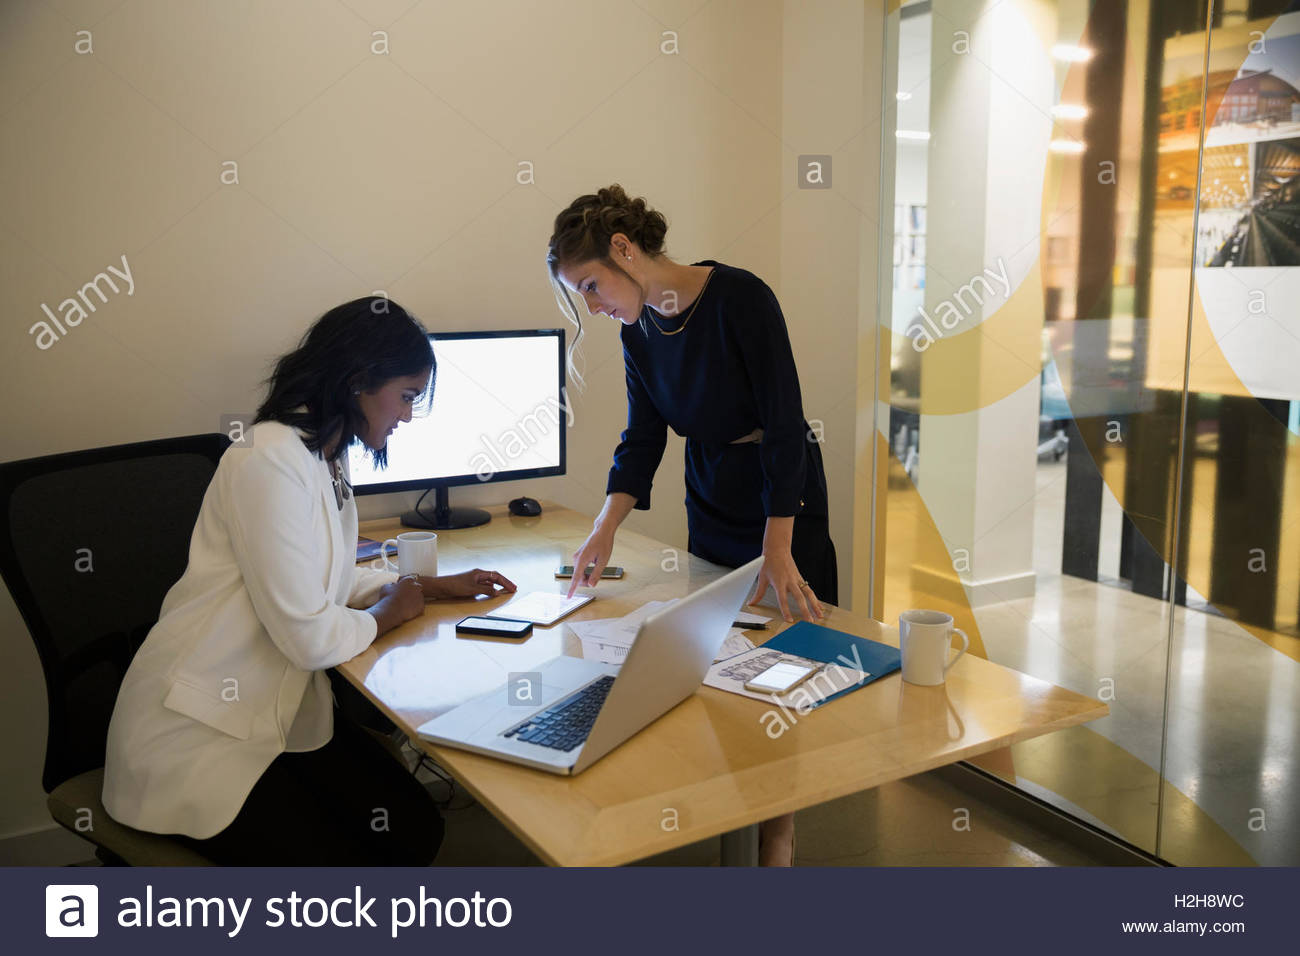 Businesswomen using digital tablet in conference room Stock Photo